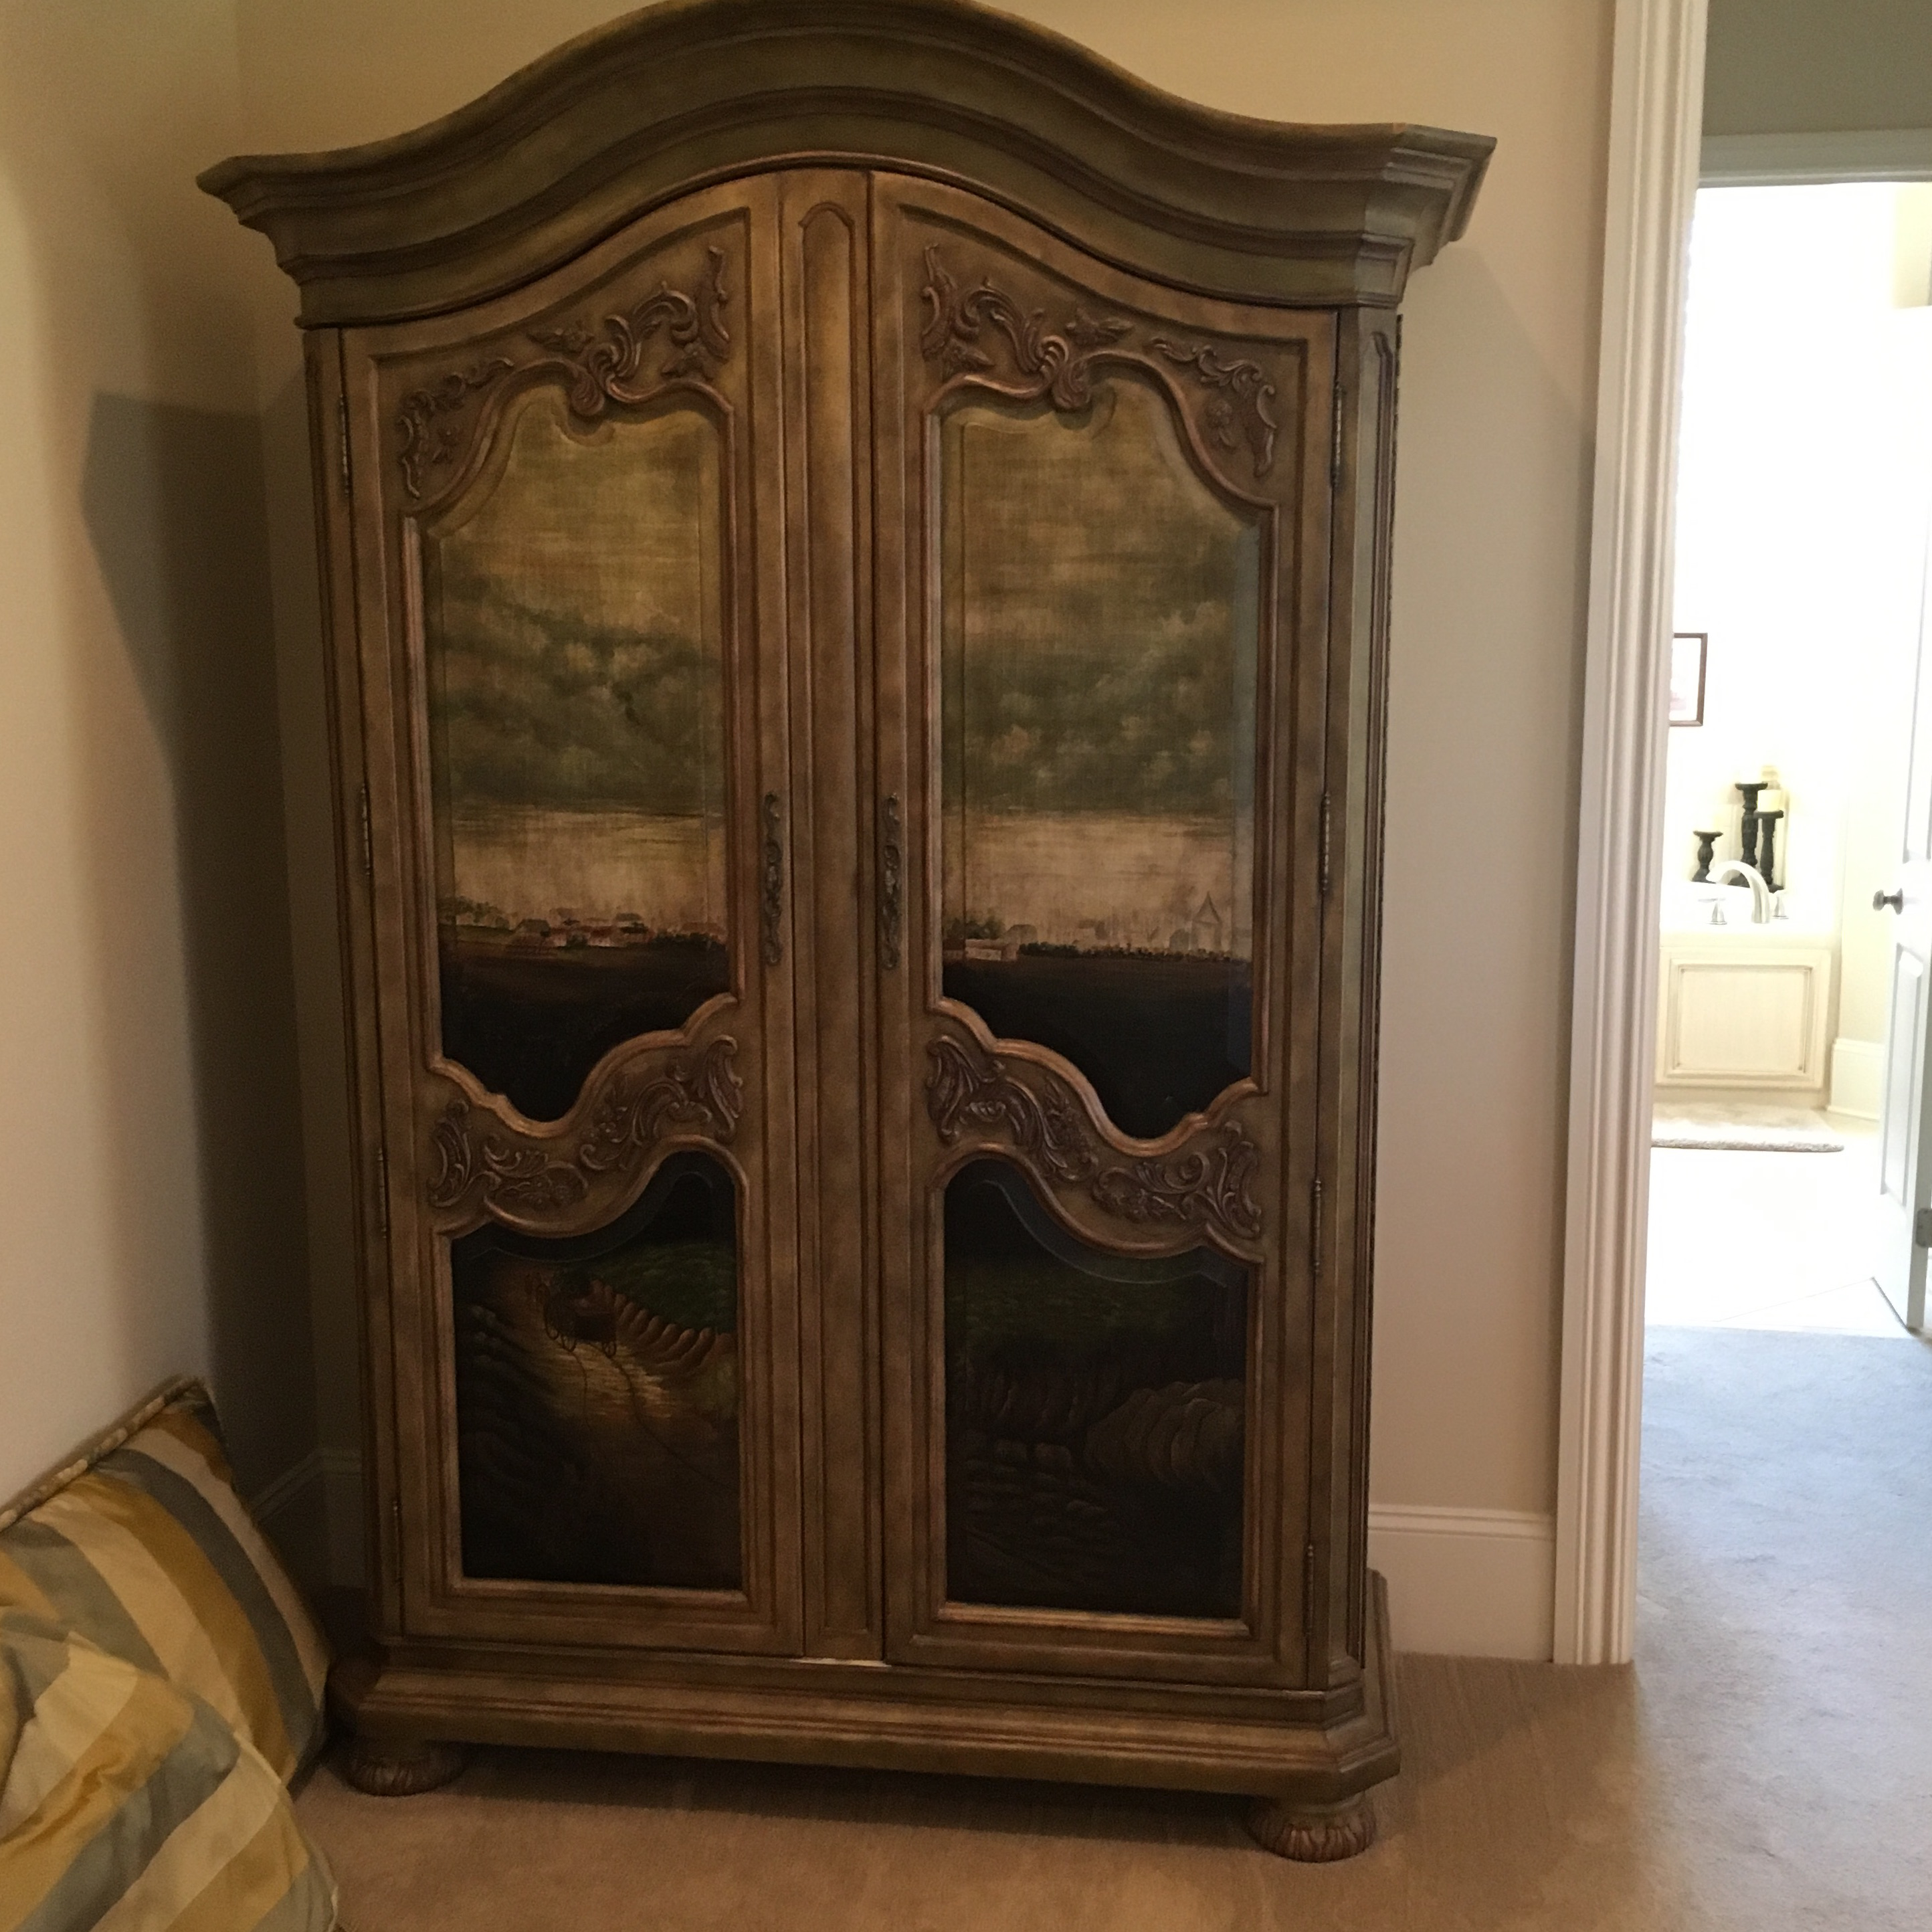 Exceptional Seven Seas By Hooker Furniture Wardrobe   Image 2 Of 7